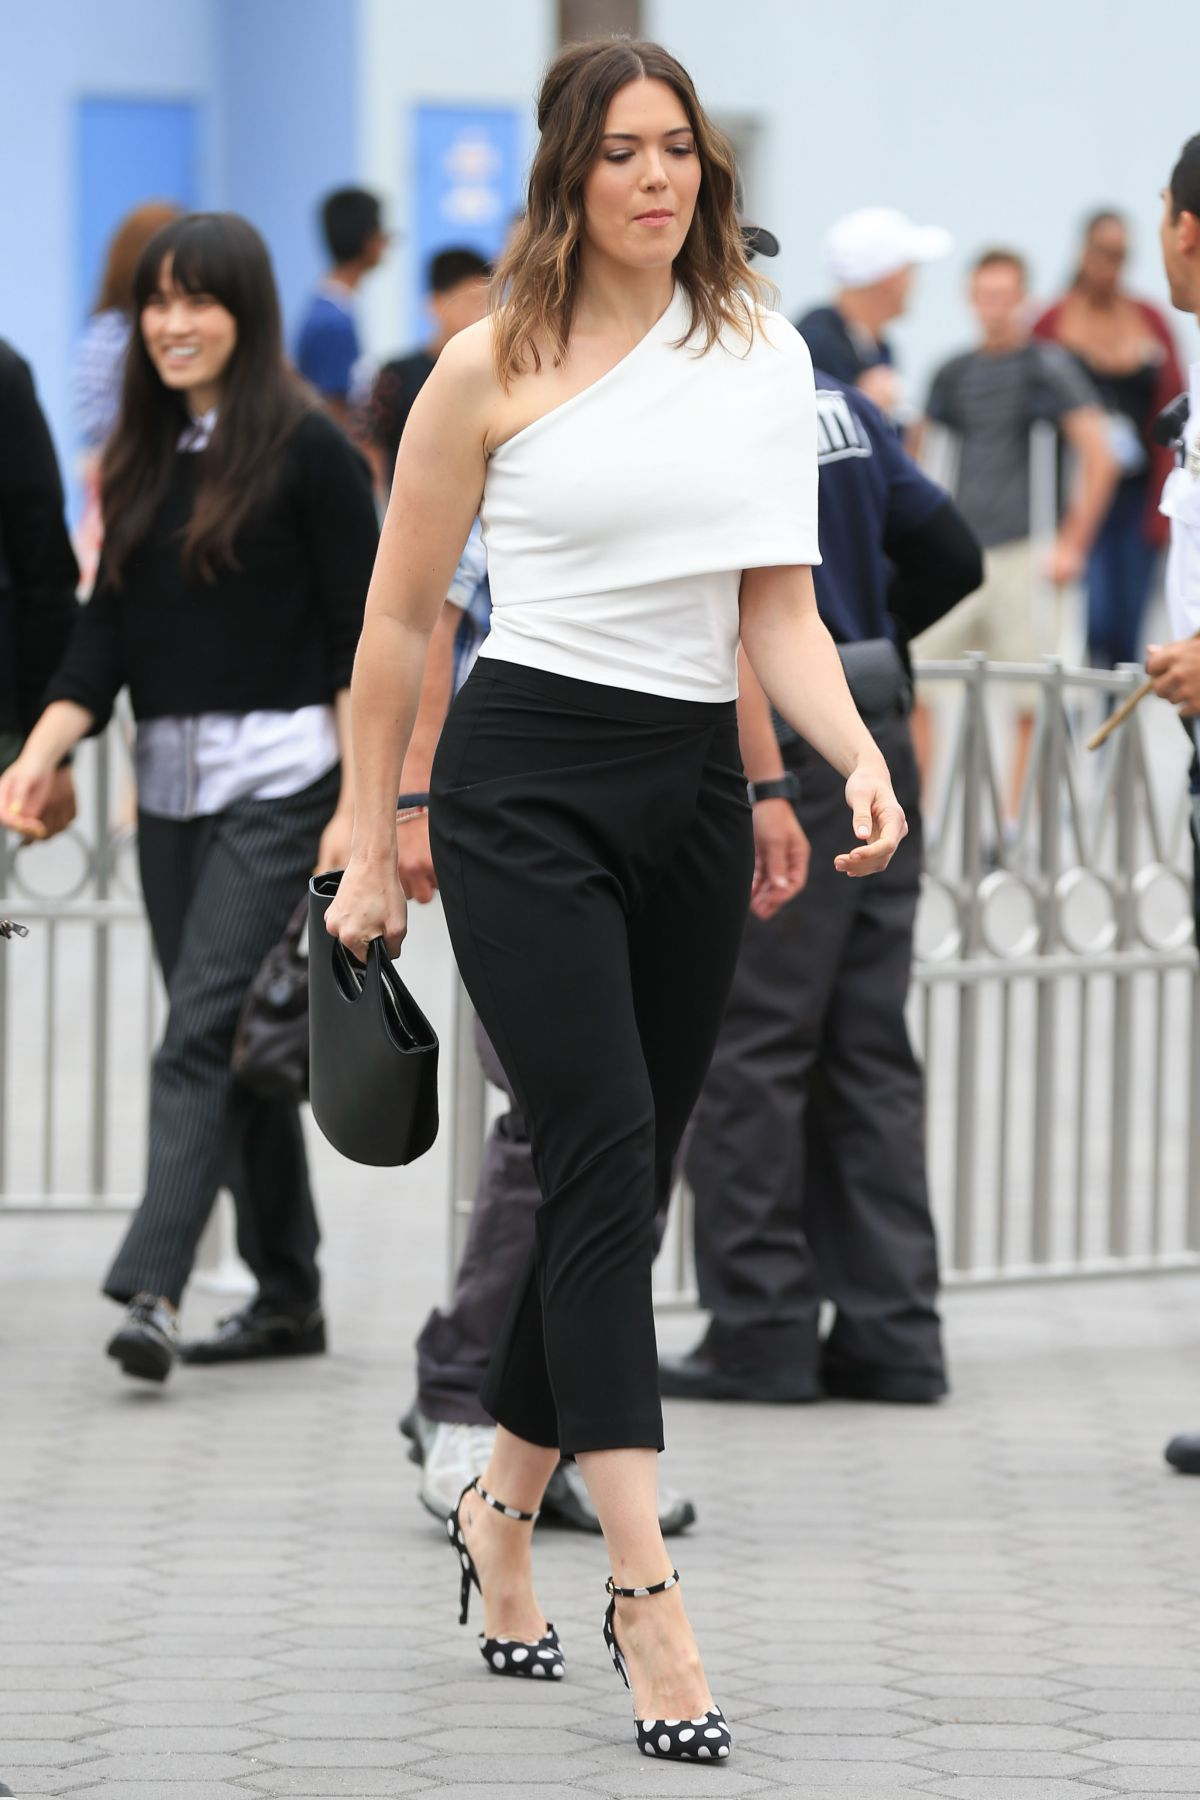 Mandy Moore At 'Extra' in Universal City   mandy-moore-at-extra-in-universal-city-_6